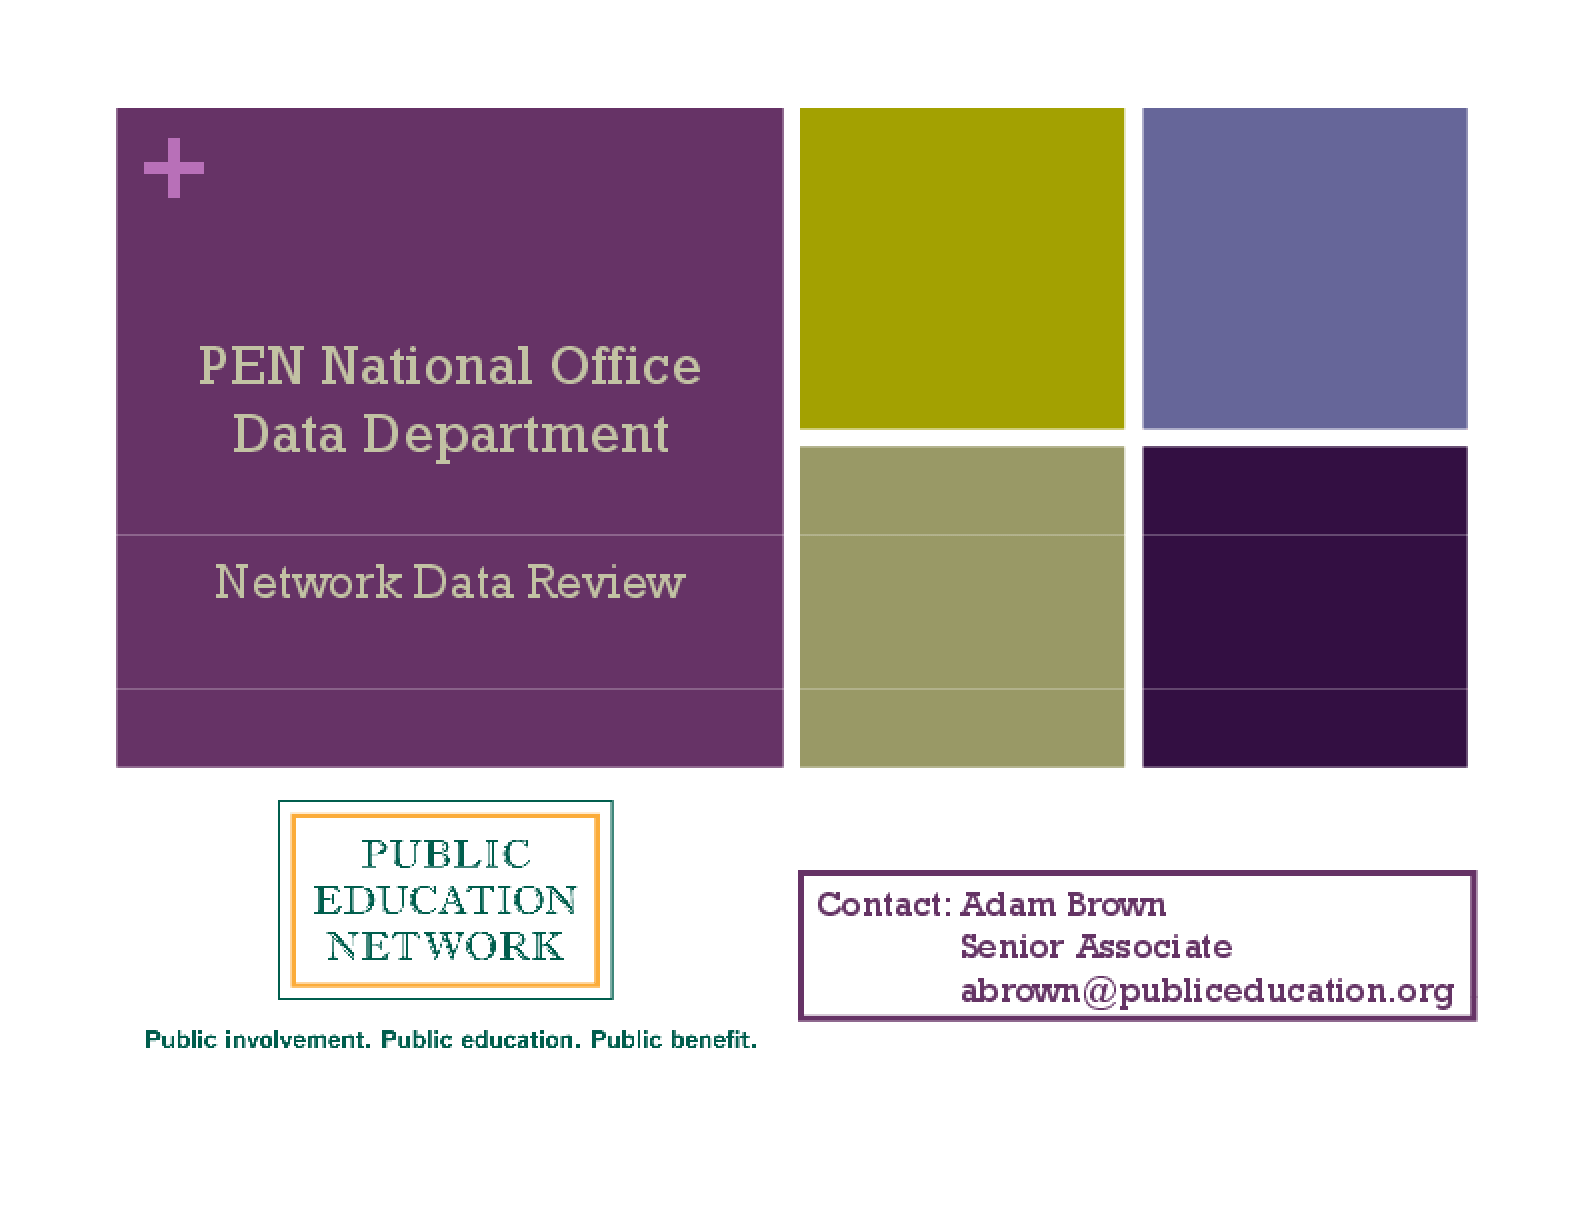 Public Education Network (PEN) Network Data Review March, 2012